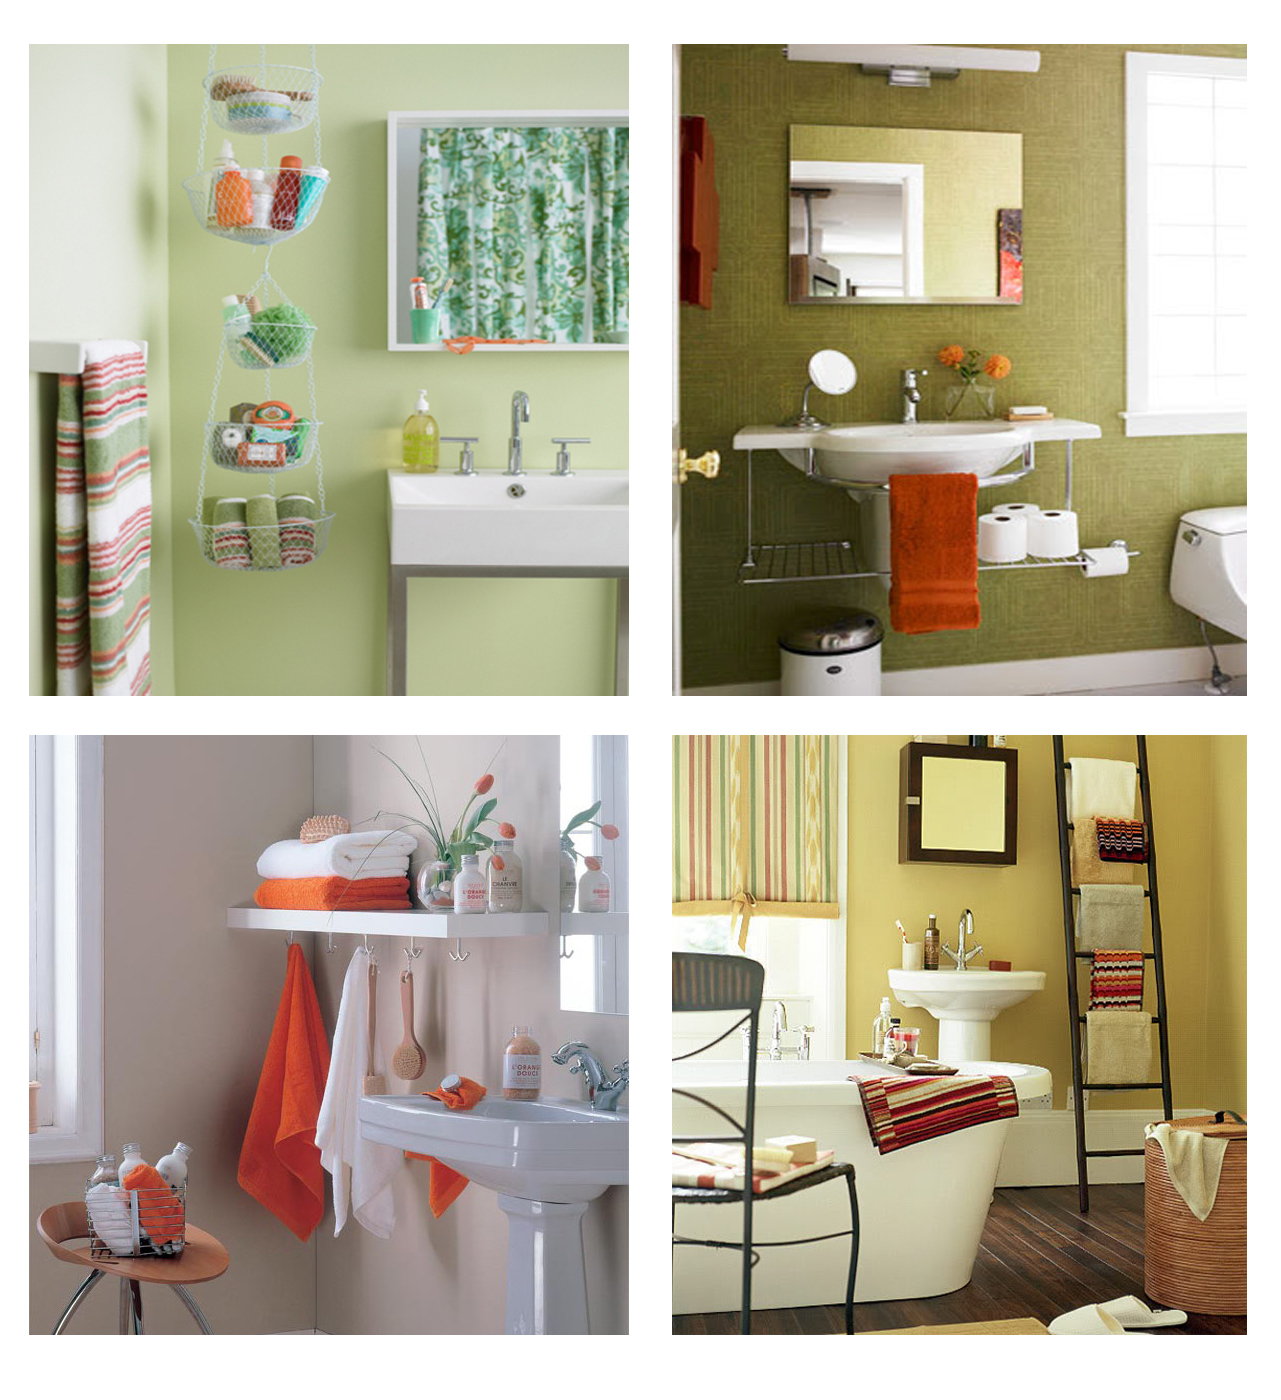 Small bathroom storage ideas for Bathroom storage ideas